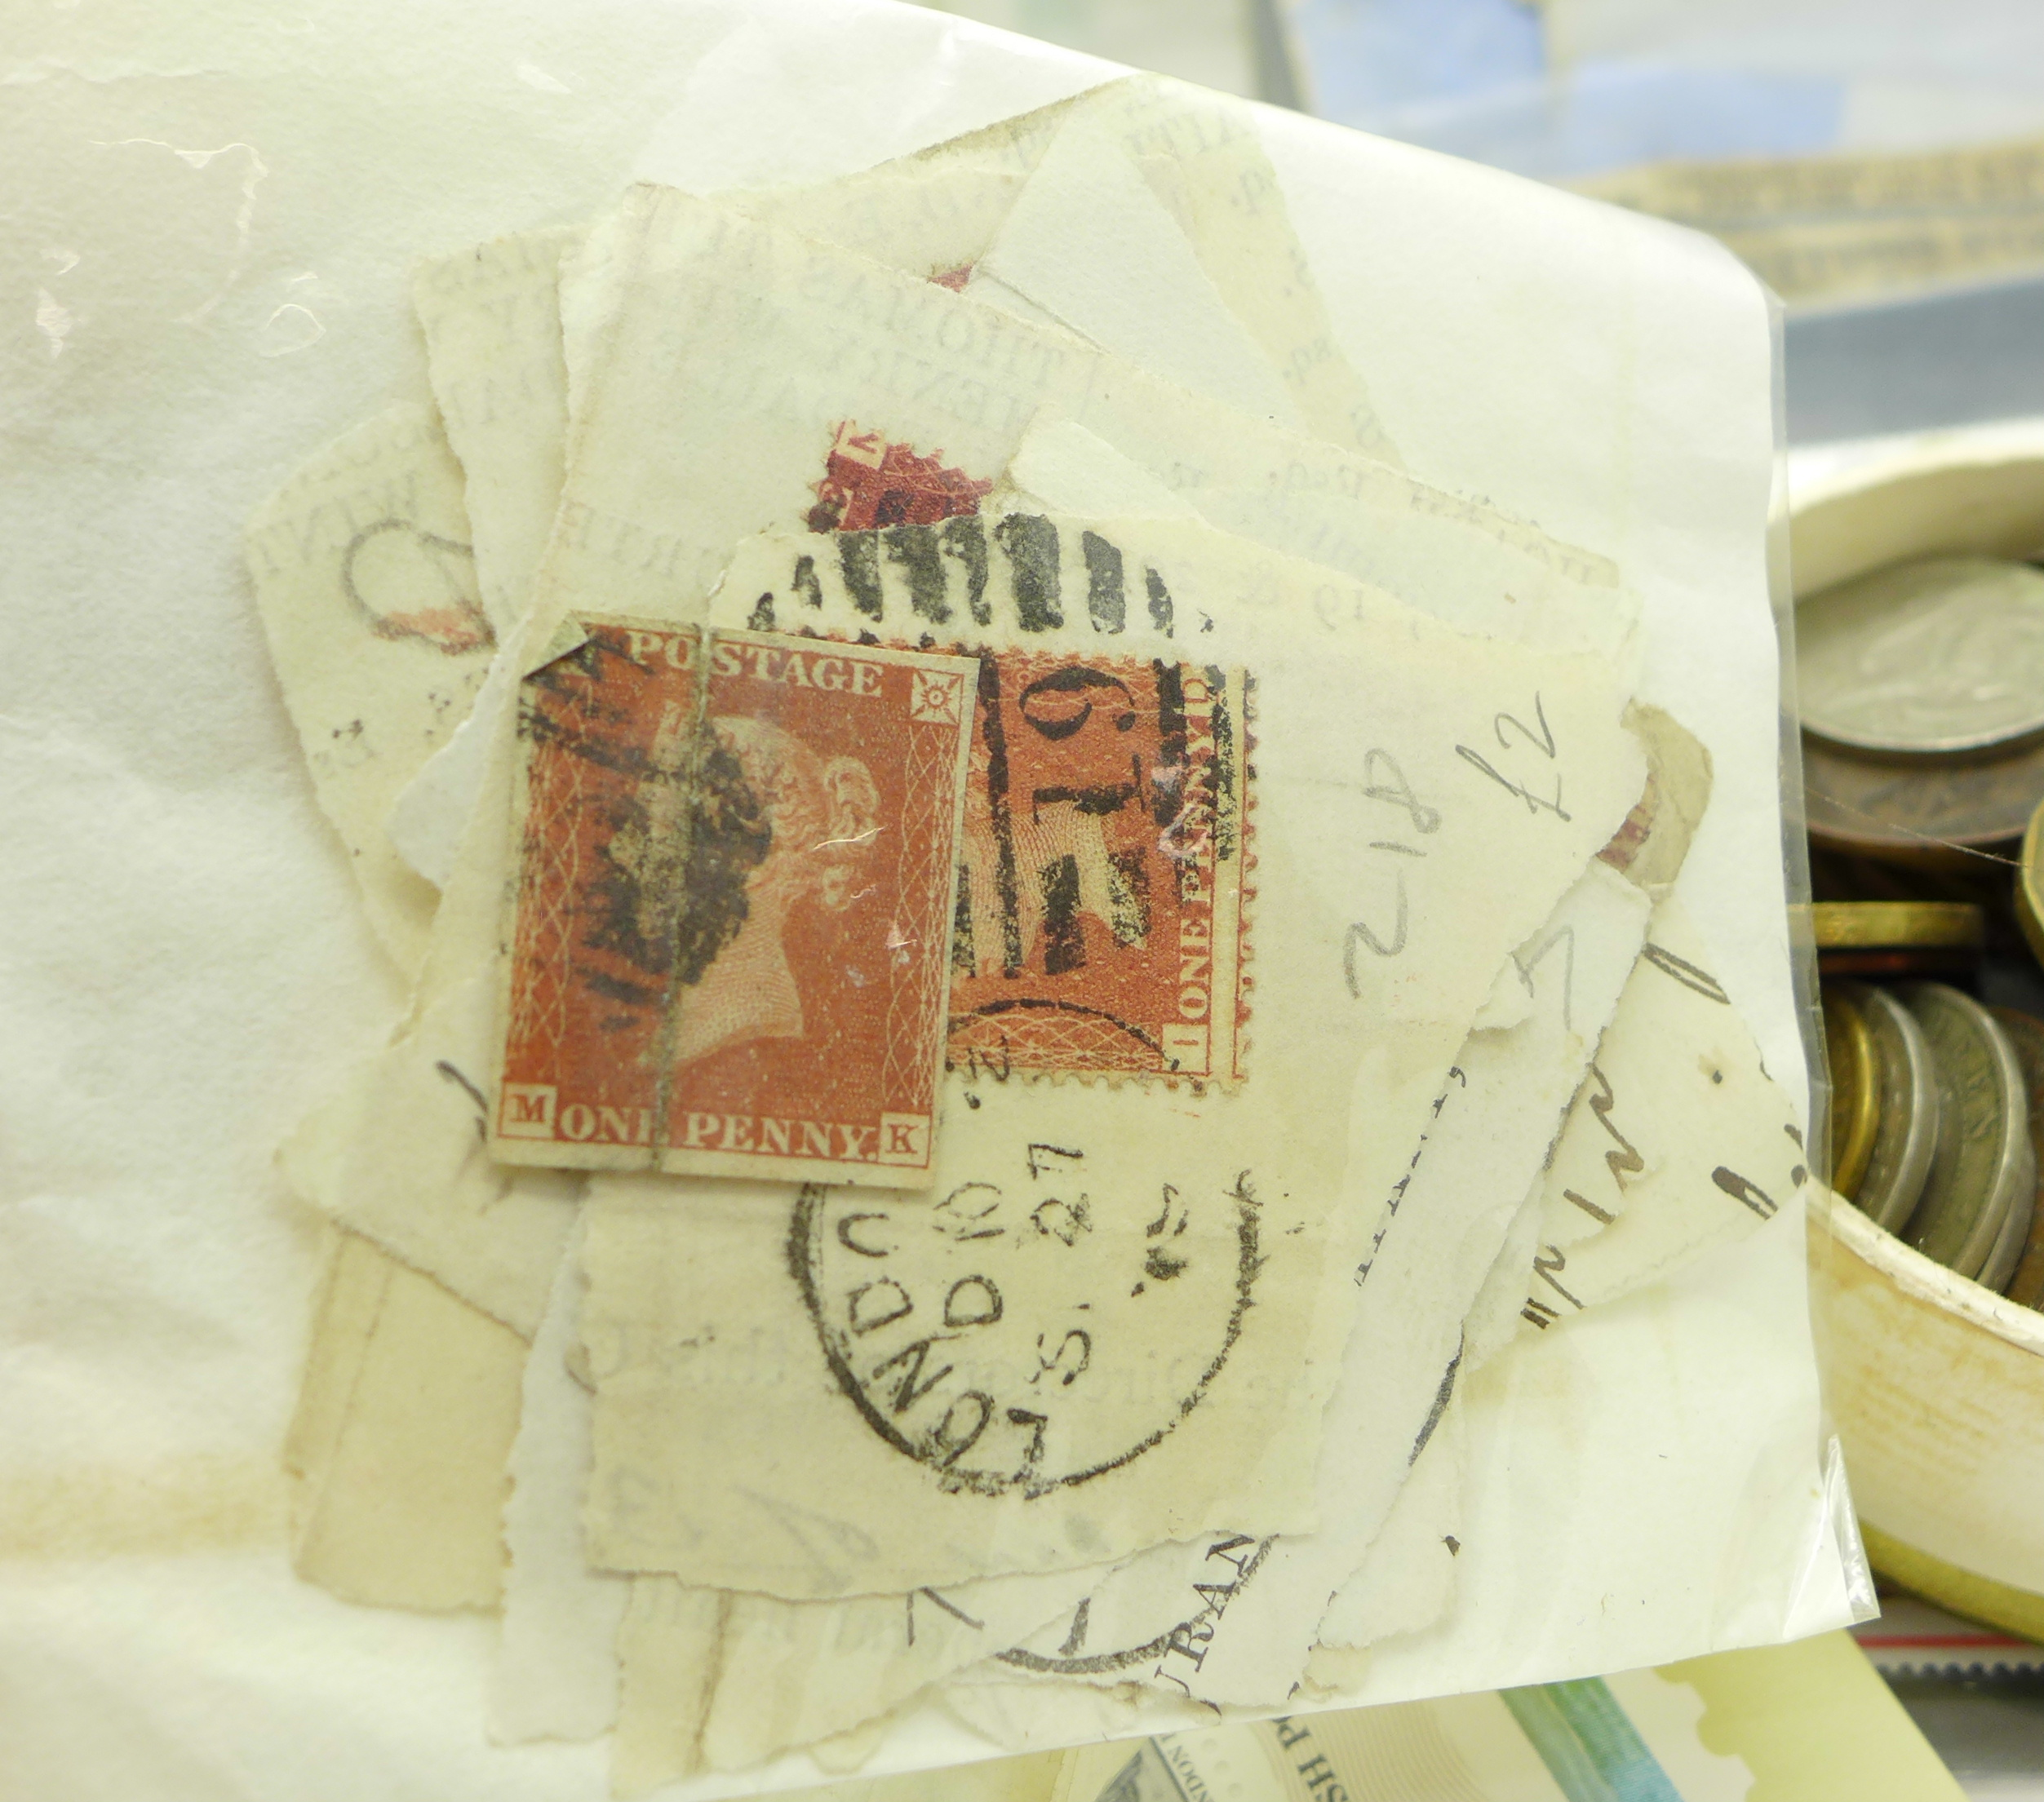 Lot 645 - An album of stamps, Royal Mail mint issue stamps,